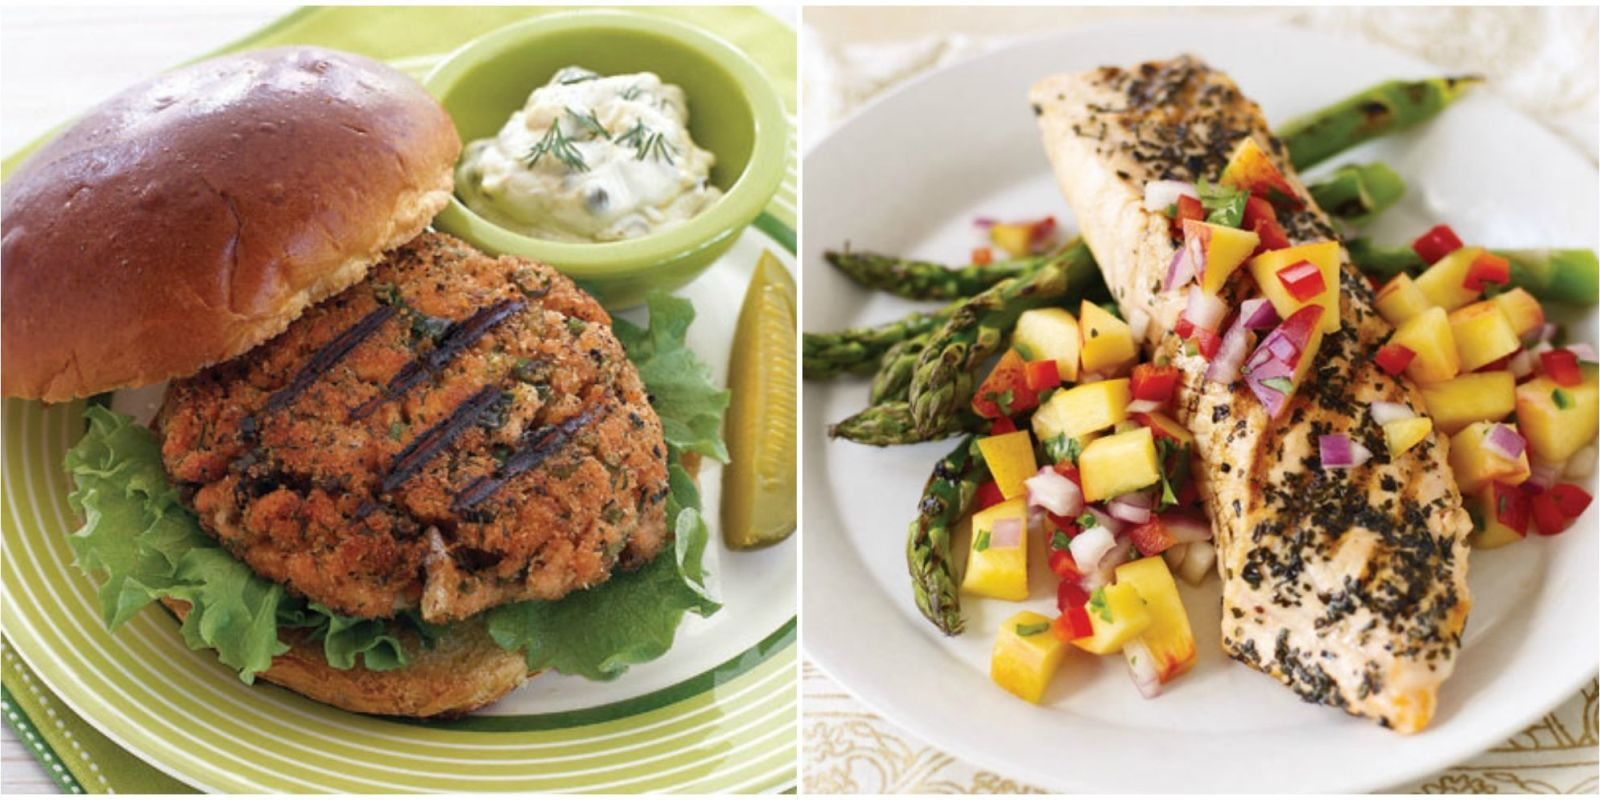 54 Easy Salmon Recipes From Baked To Grilled How To Cook